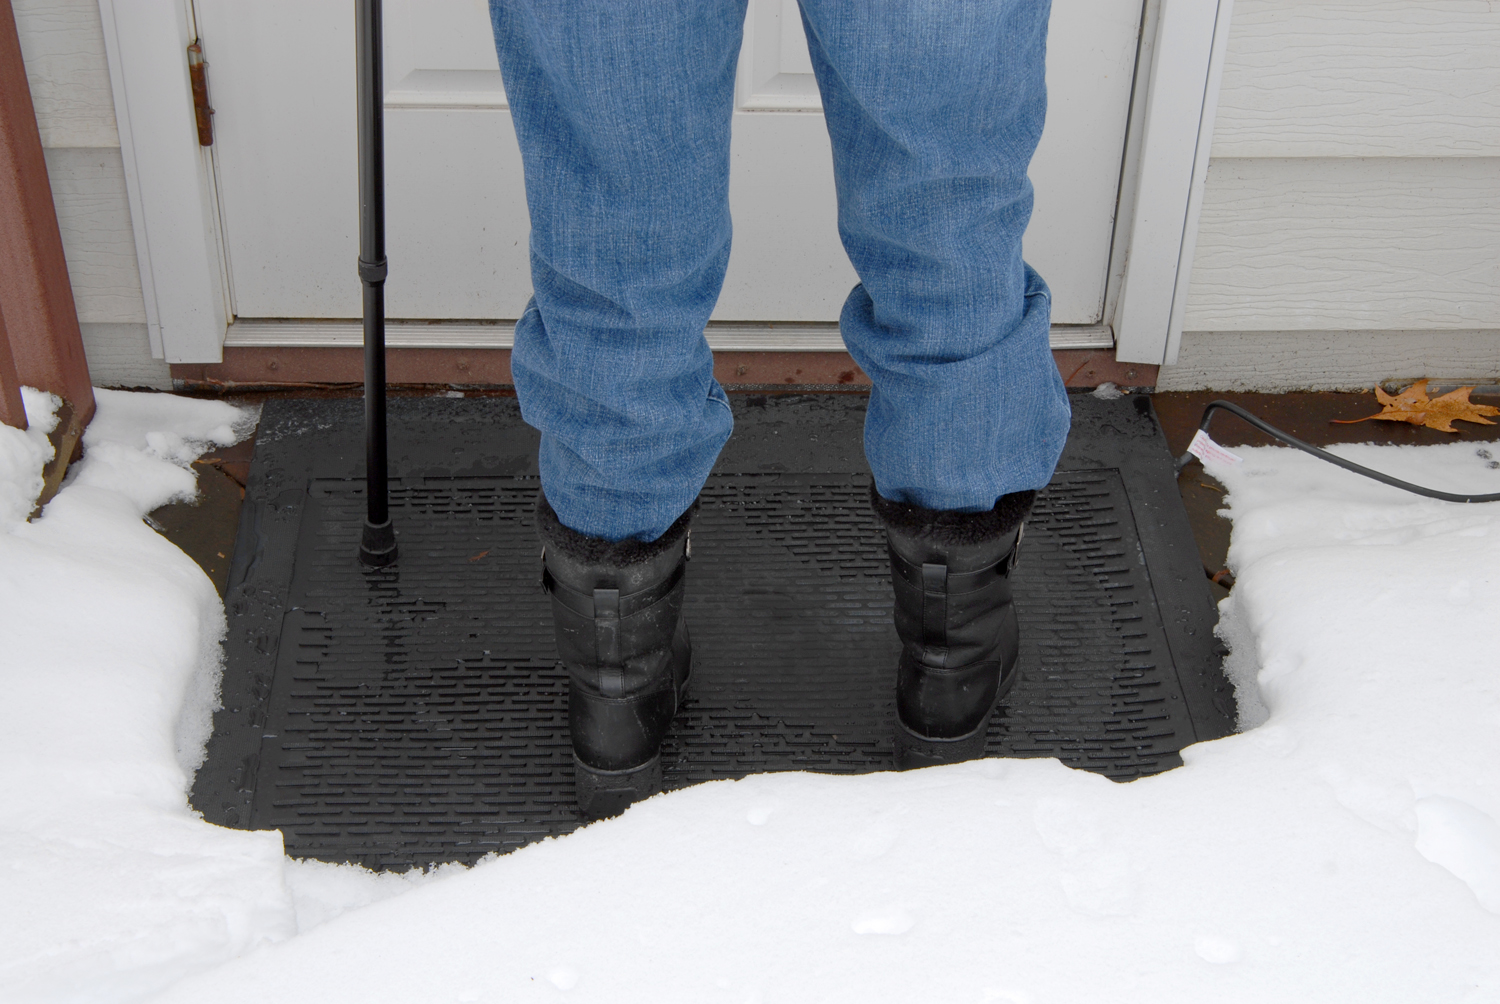 new heated snow and ice removal mats provide safe outdoor footing